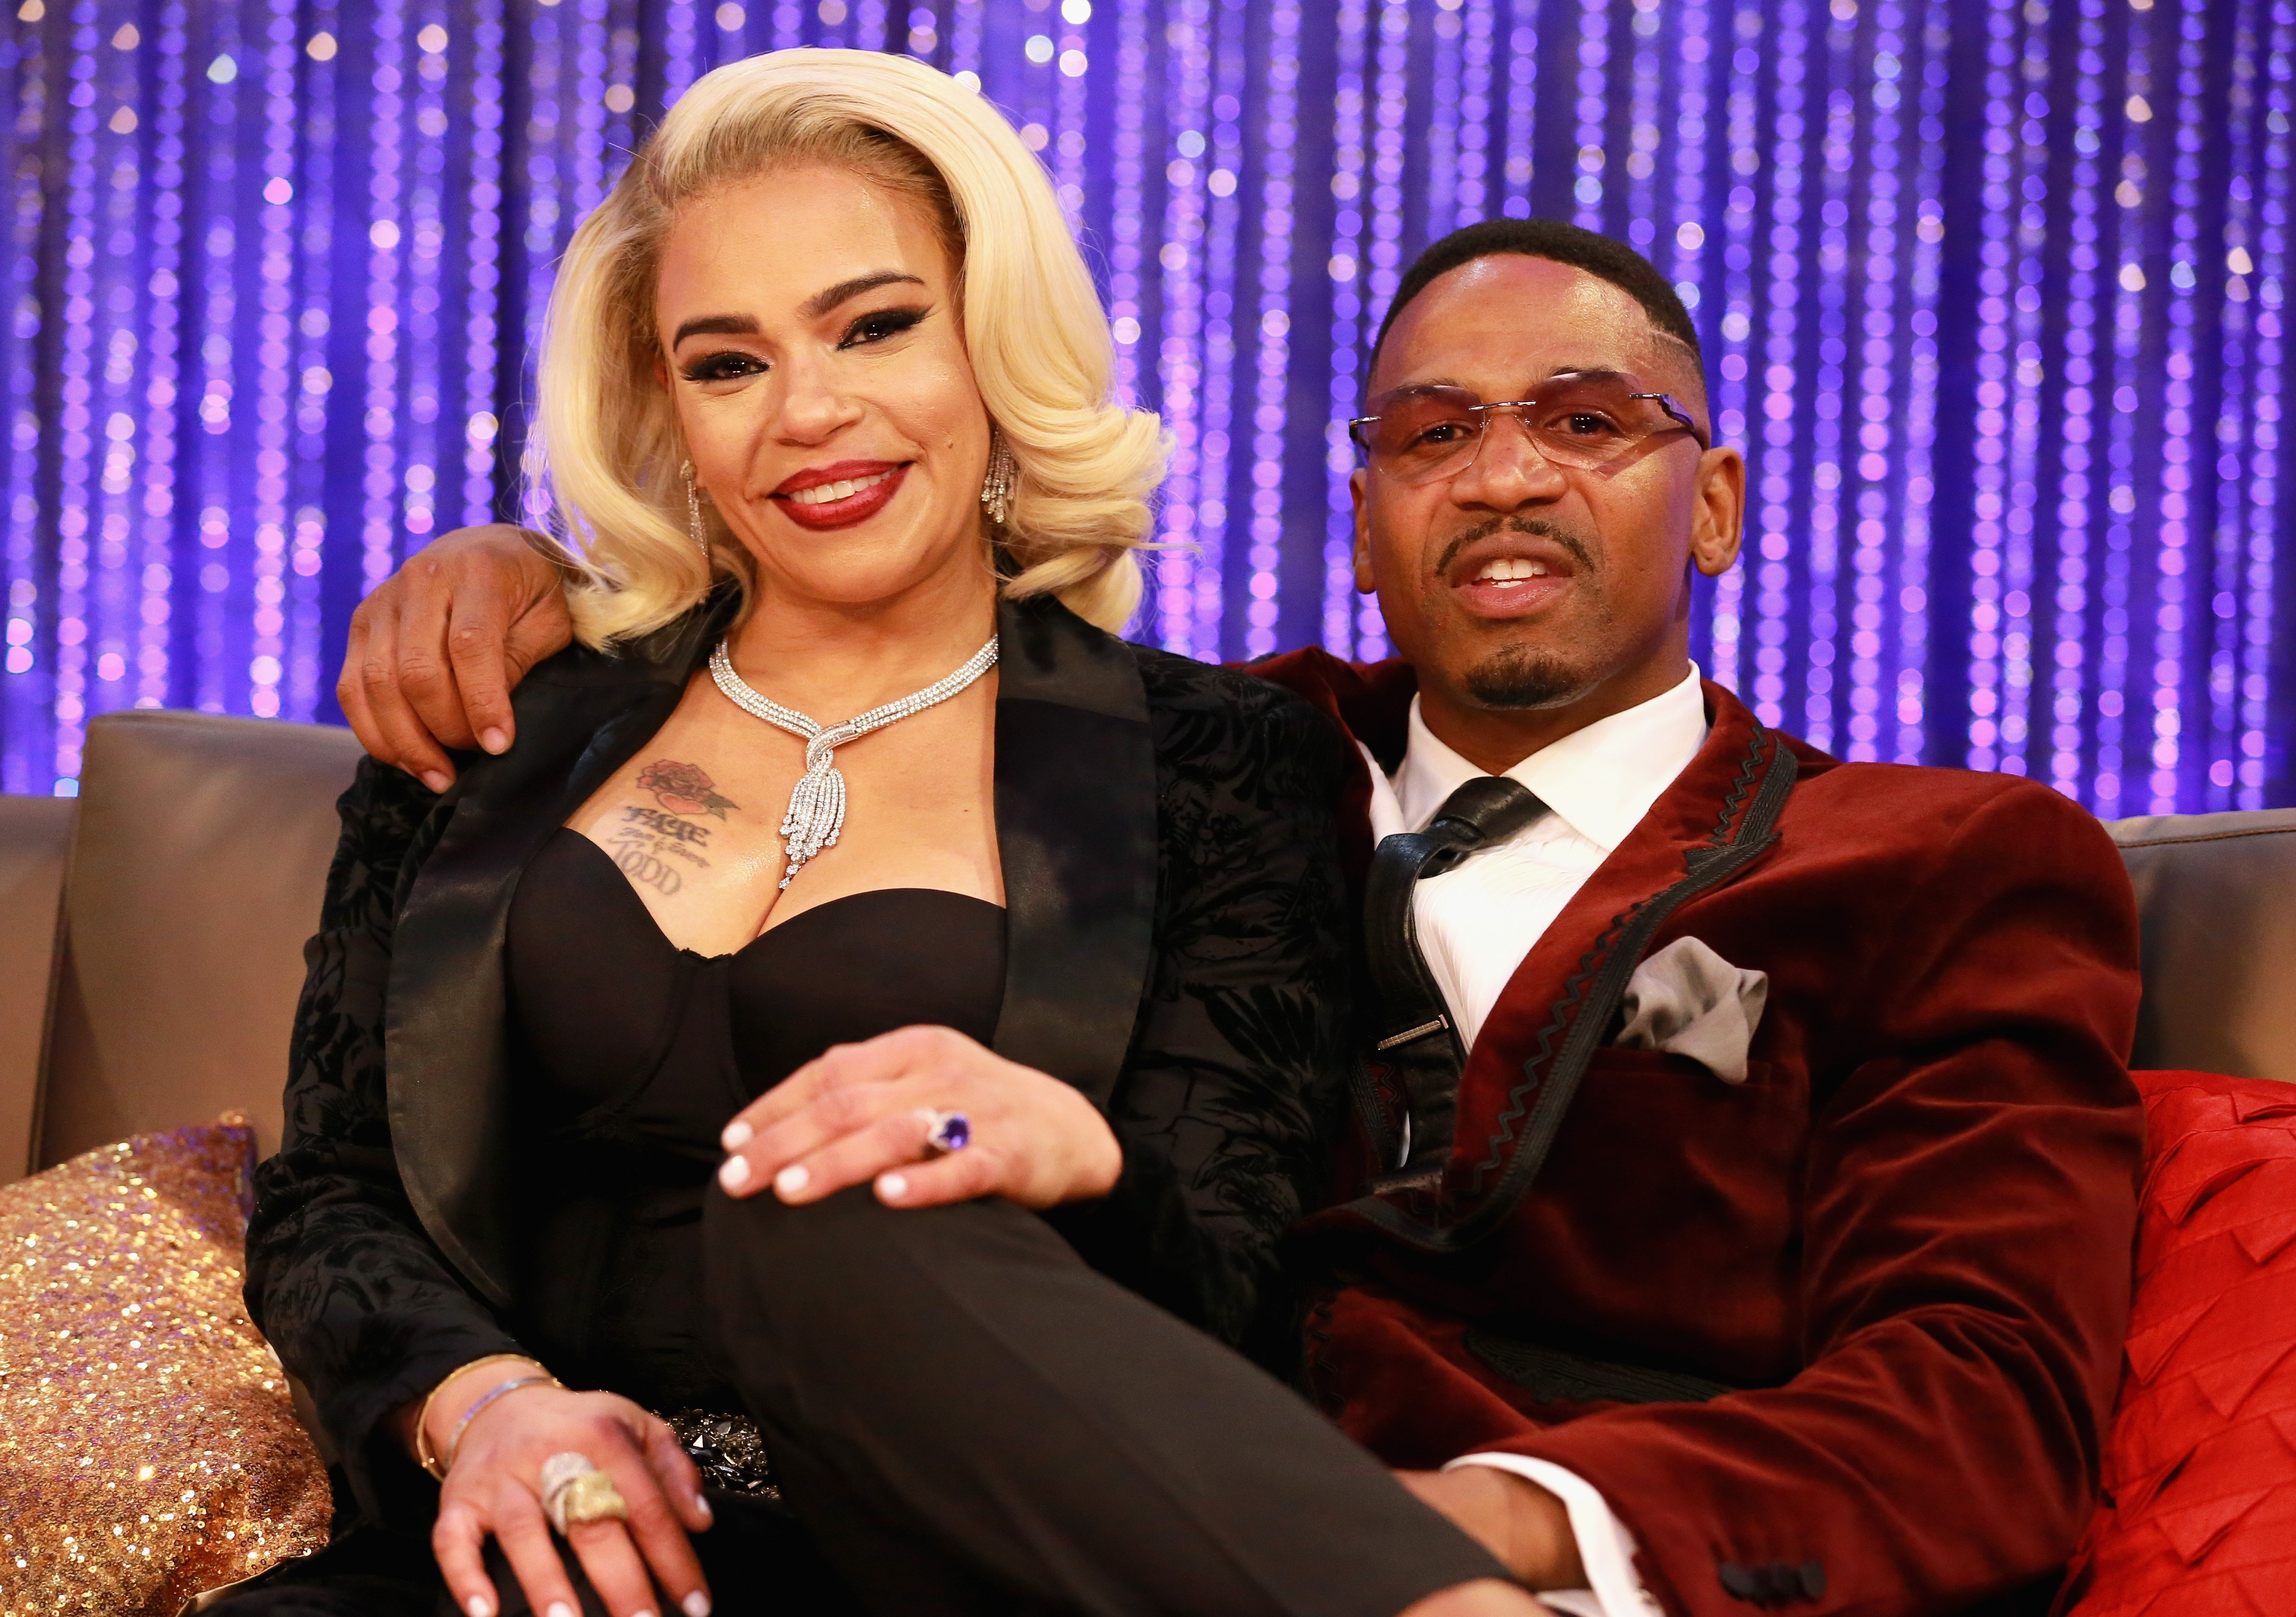 Stevie J and Faith Evans at the post-show of the 2018 Soul Train Awards in Las Vegas. | Photo: Getty Images